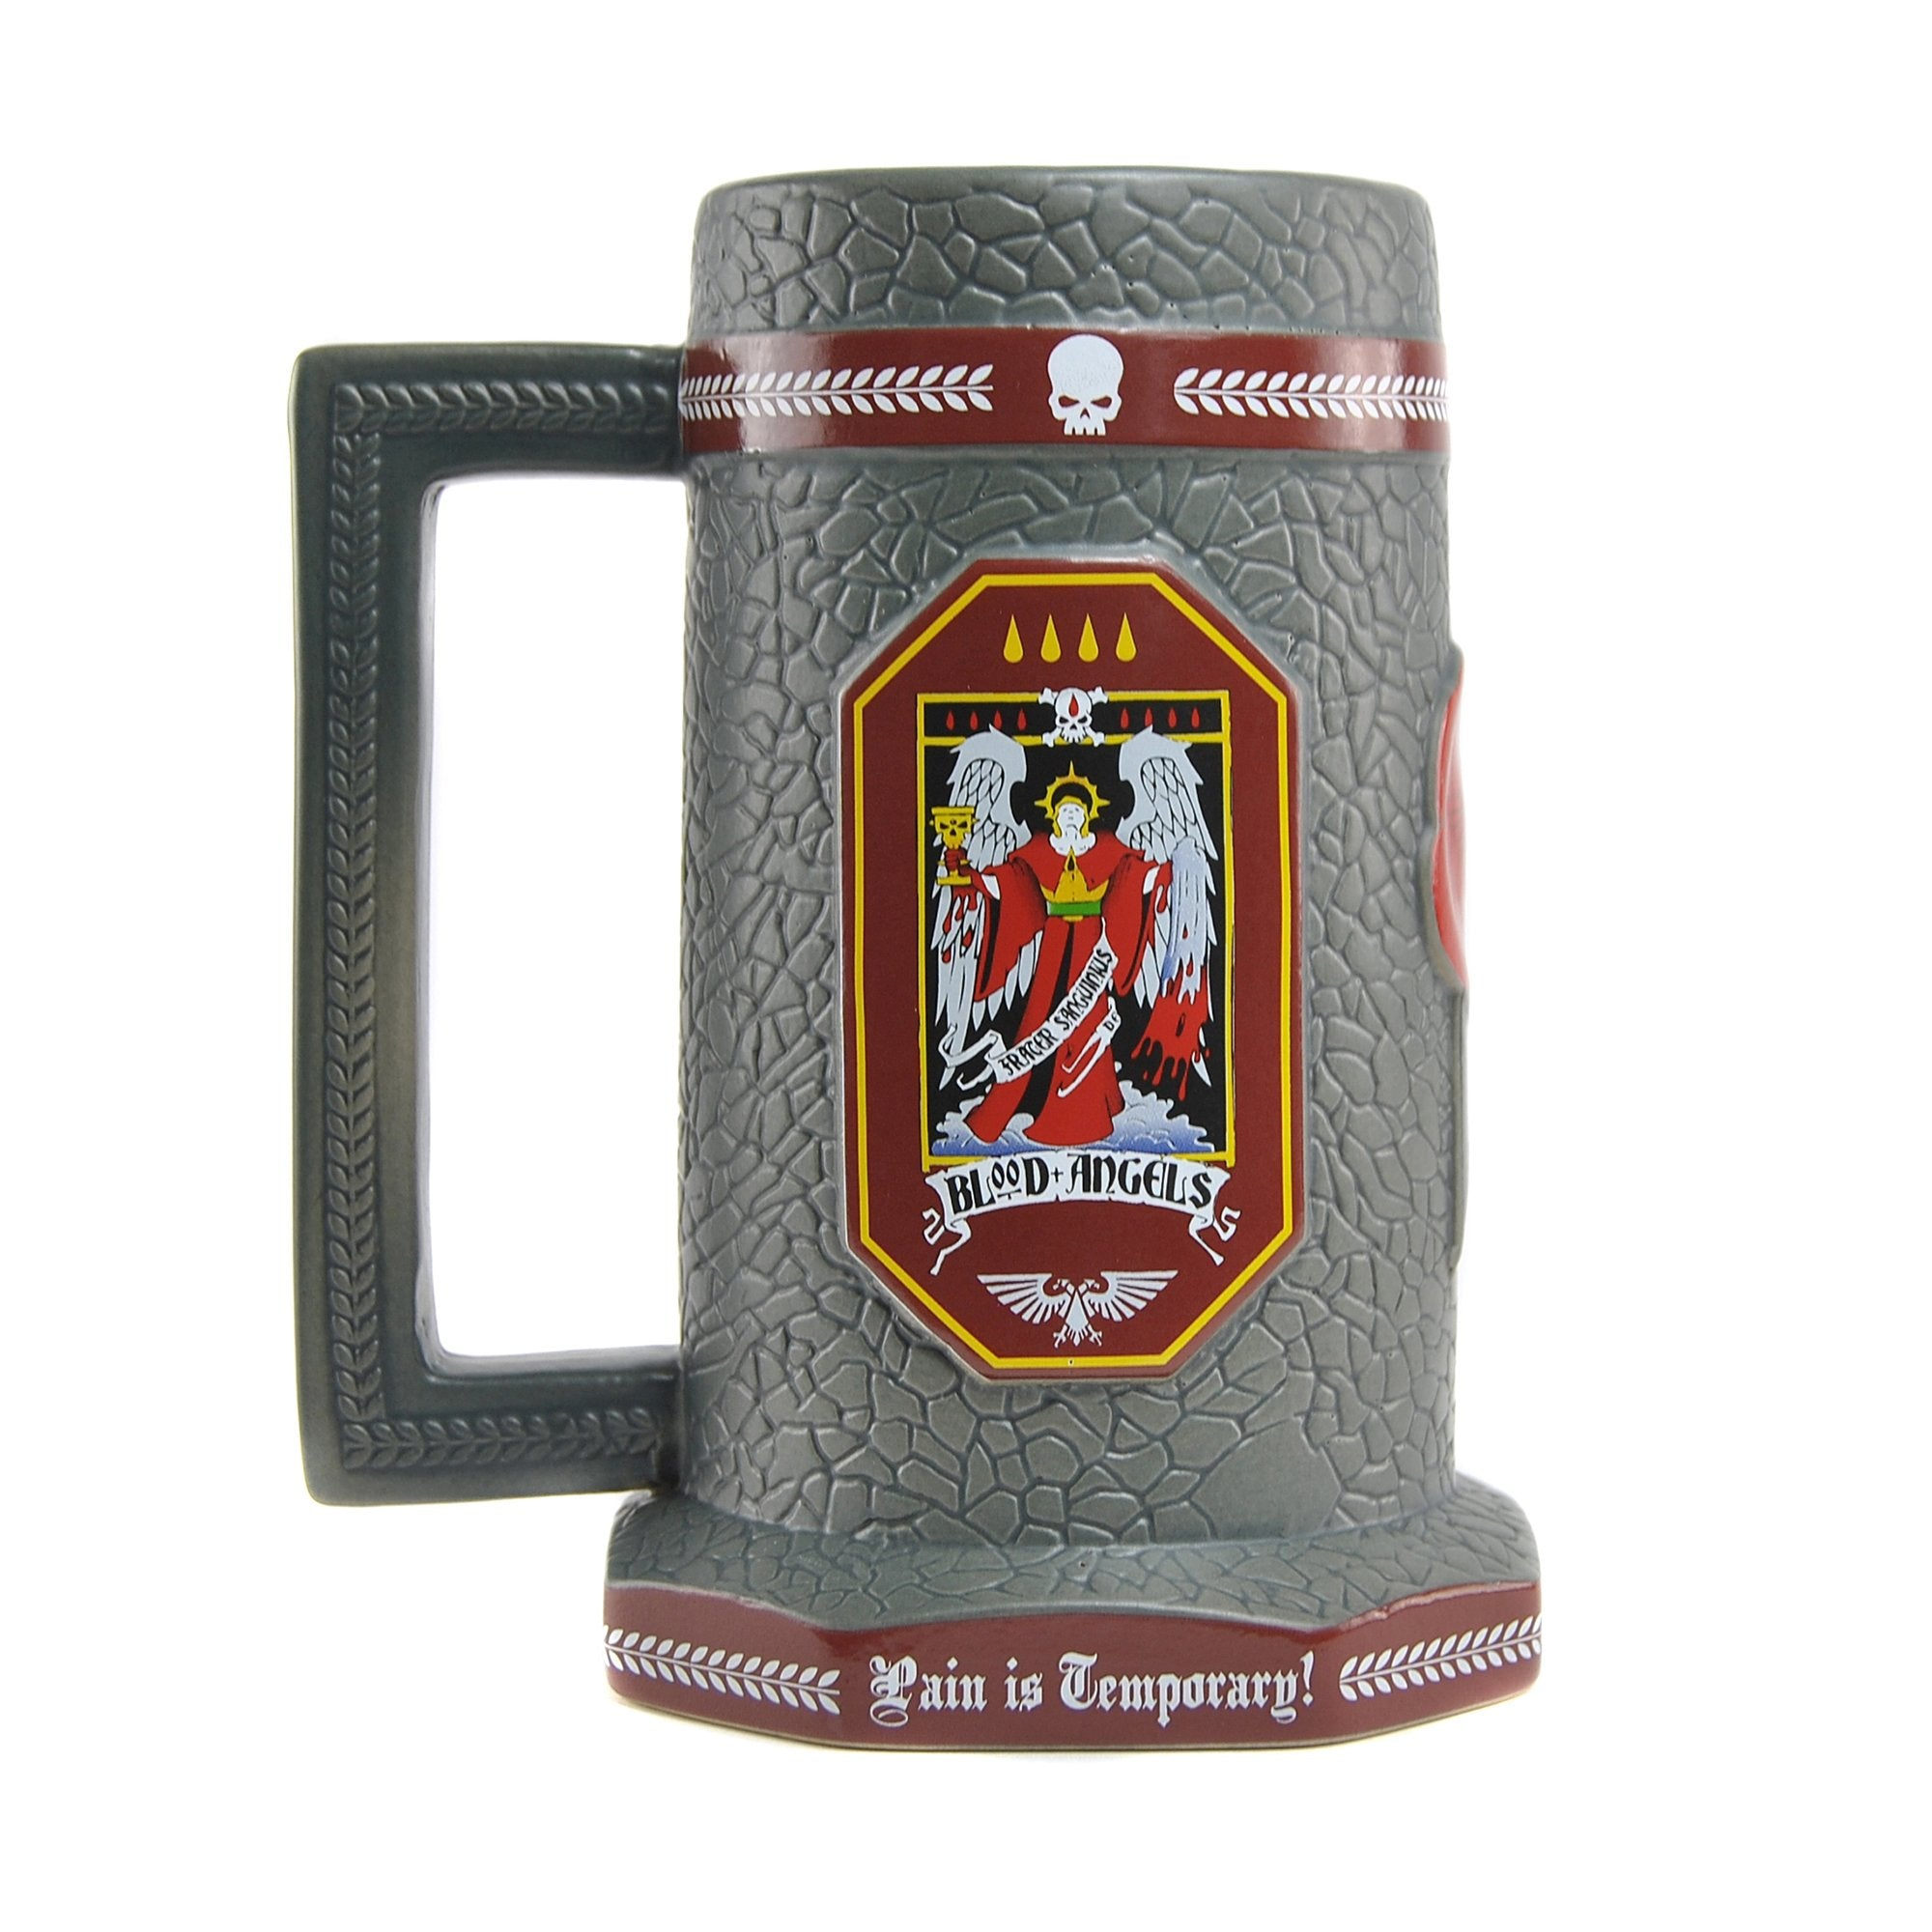 Warhammer 40,000 Stein Mug - Blood Angels - Half Moon Bay US